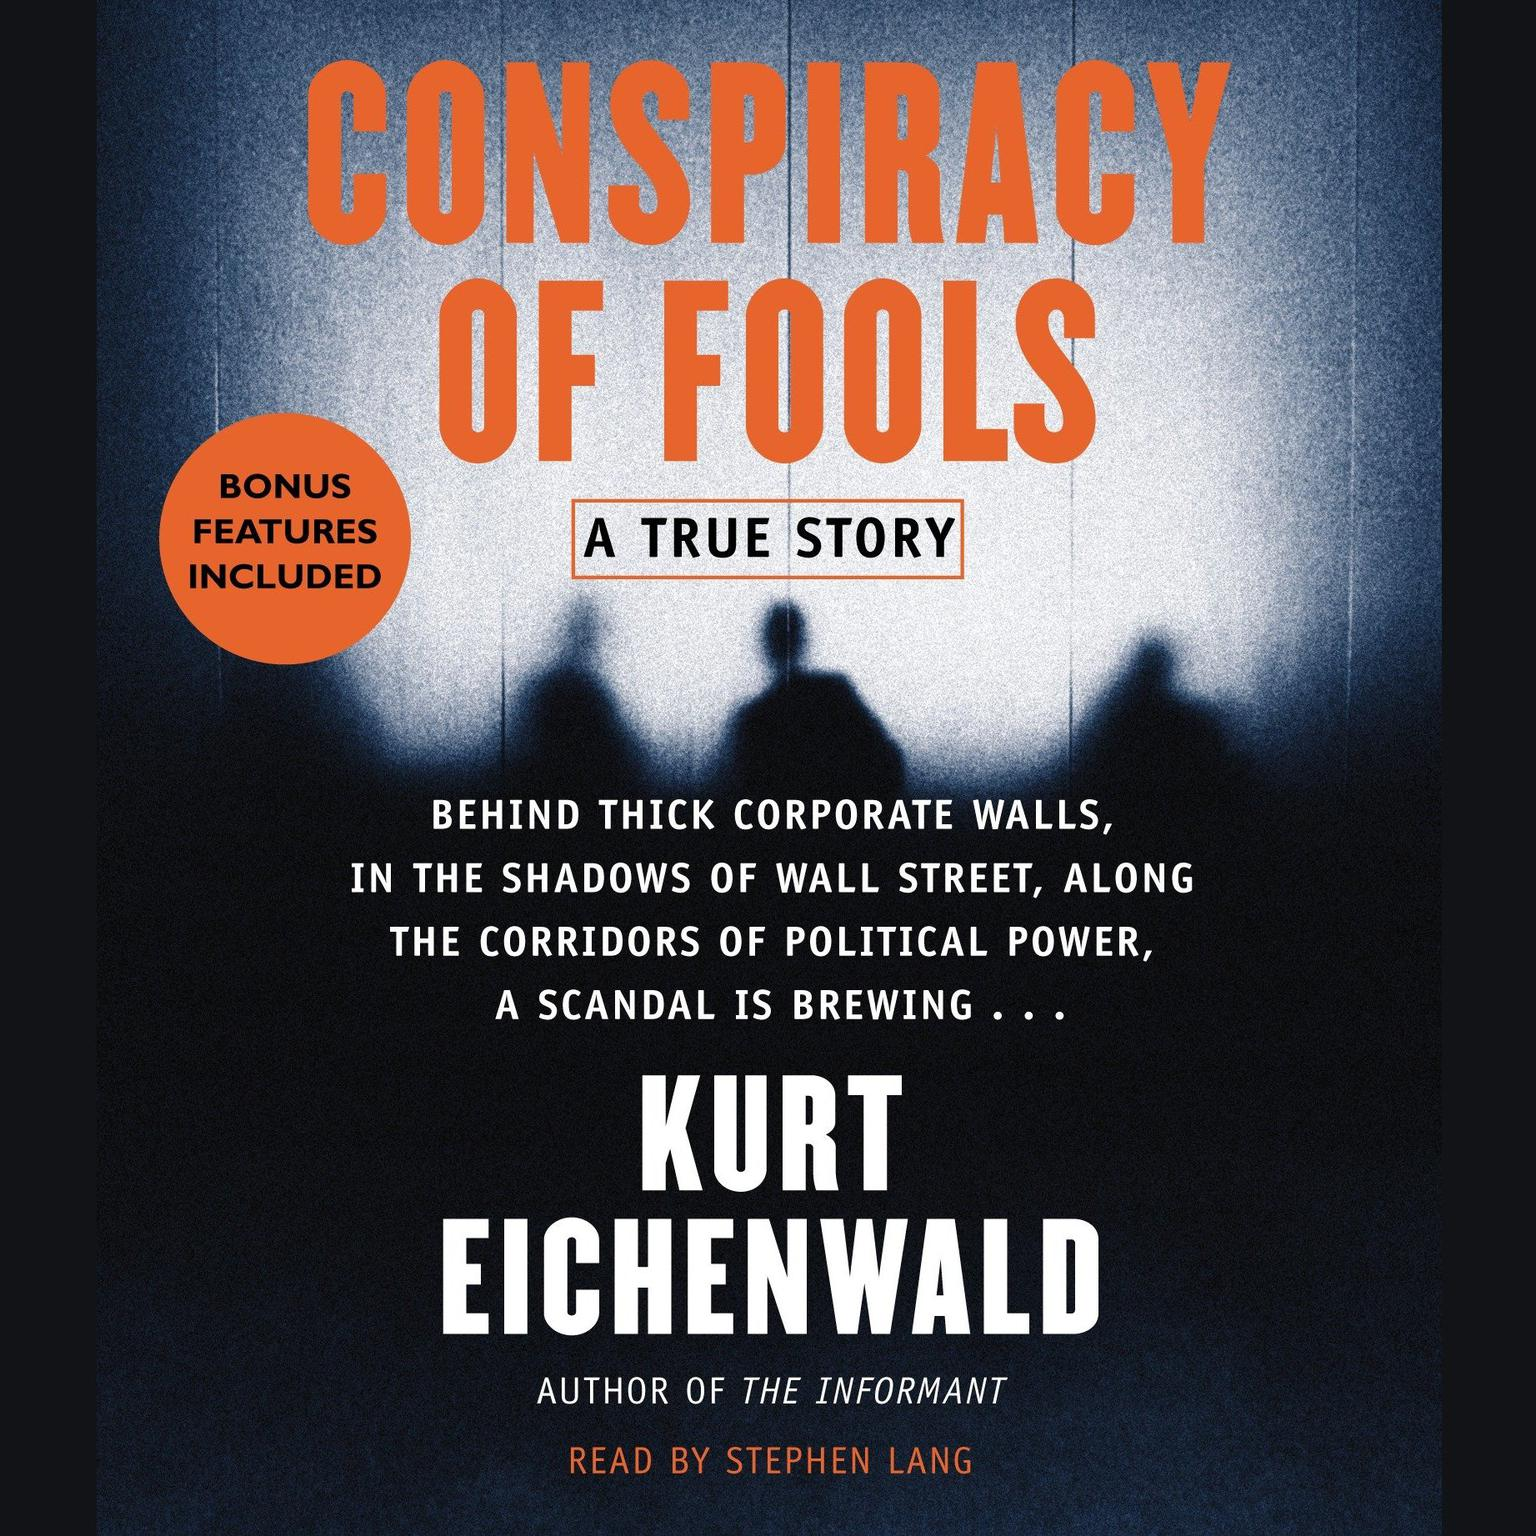 Conspiracy of Fools: A True Story Audiobook, by Kurt Eichenwald